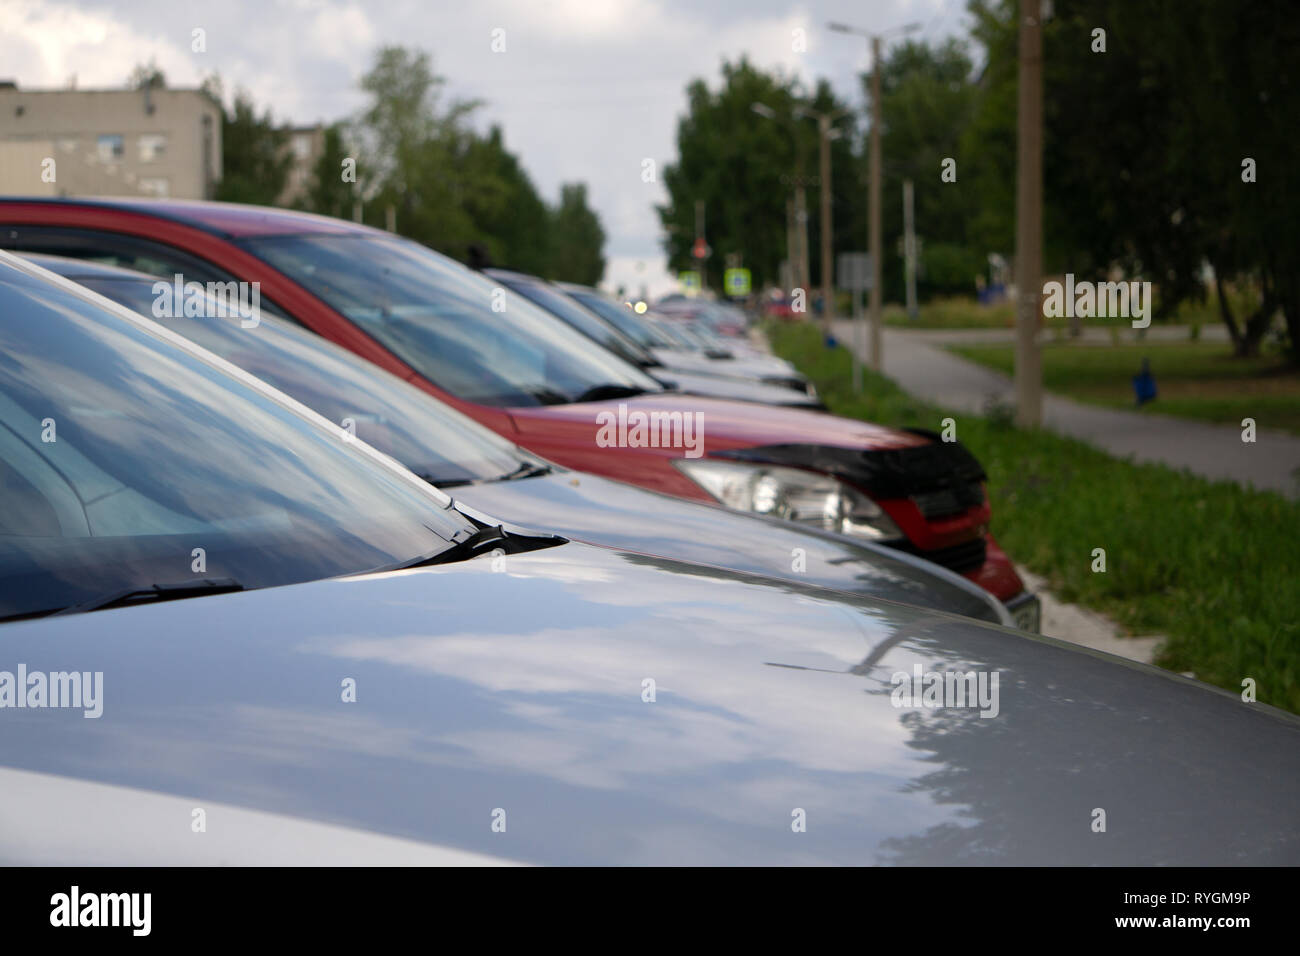 Cars For Sale Stock Lot Row bonnet Stock Photo: 240697682